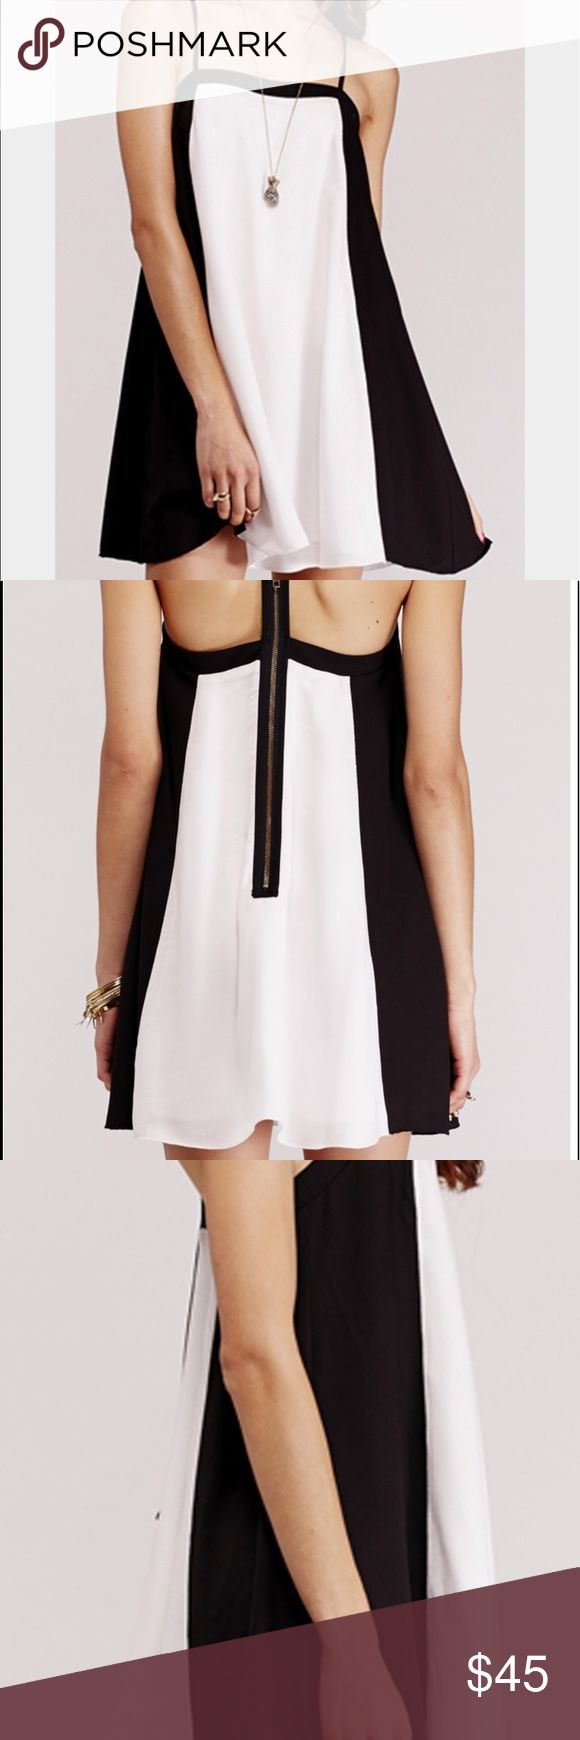 Ladakh Dress Size M The liquid dress from Ladakh will take you from a casual lunch to the races. Featuring black and white detail with t bar back and gold zip, the dress is floaty and A line style, so very flattering on the tummy, hips and bottom. The dress has adjustable spaghetti straps, is fully lined and with the black side panels, creates a slimming silhouette. This dress is an ideal choice for a casual weekend look with flats to a fascinator and earrings for the races or a special…